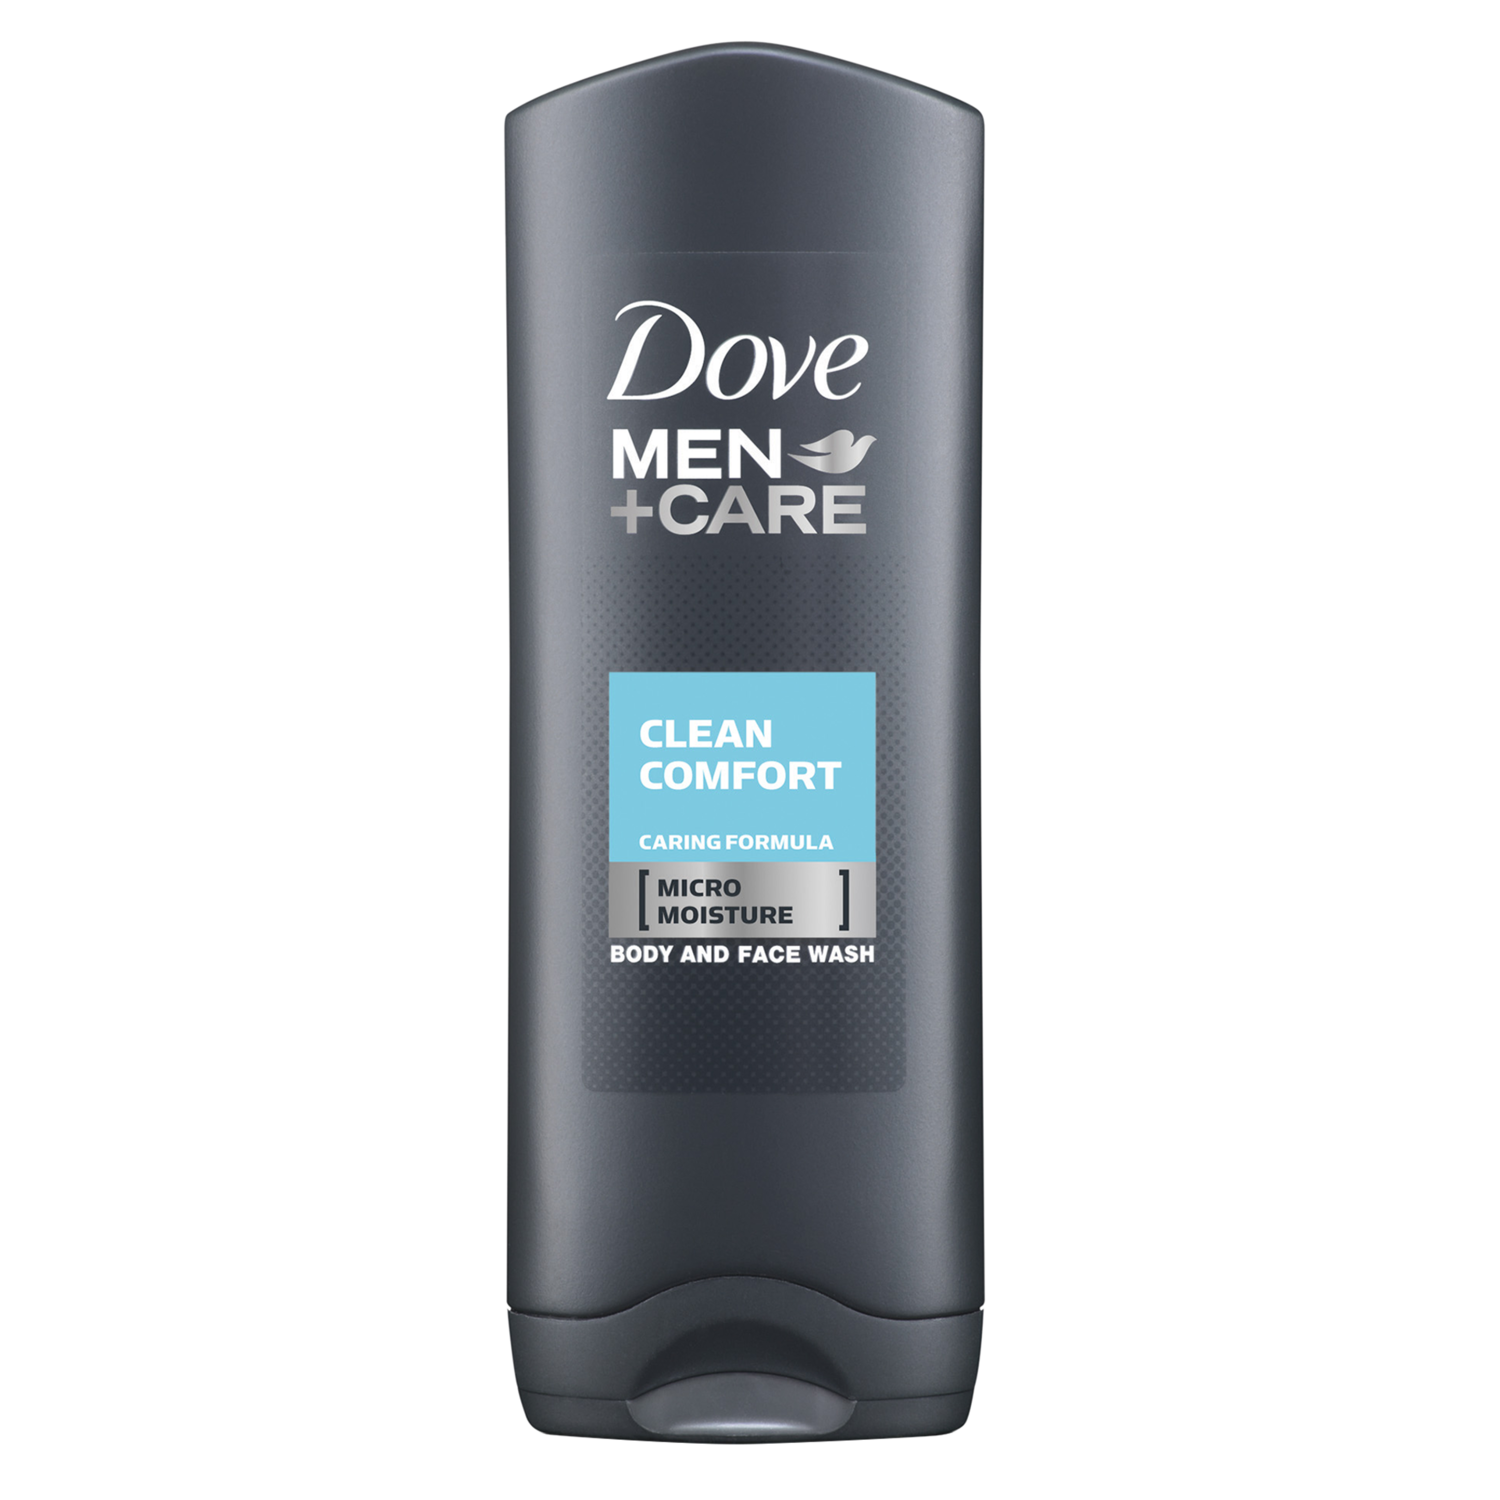 Looking for hair products, skin care and deodorant to leave you looking and feeling beautiful? With tricks, tips, and products built on expert care, Dove can help.